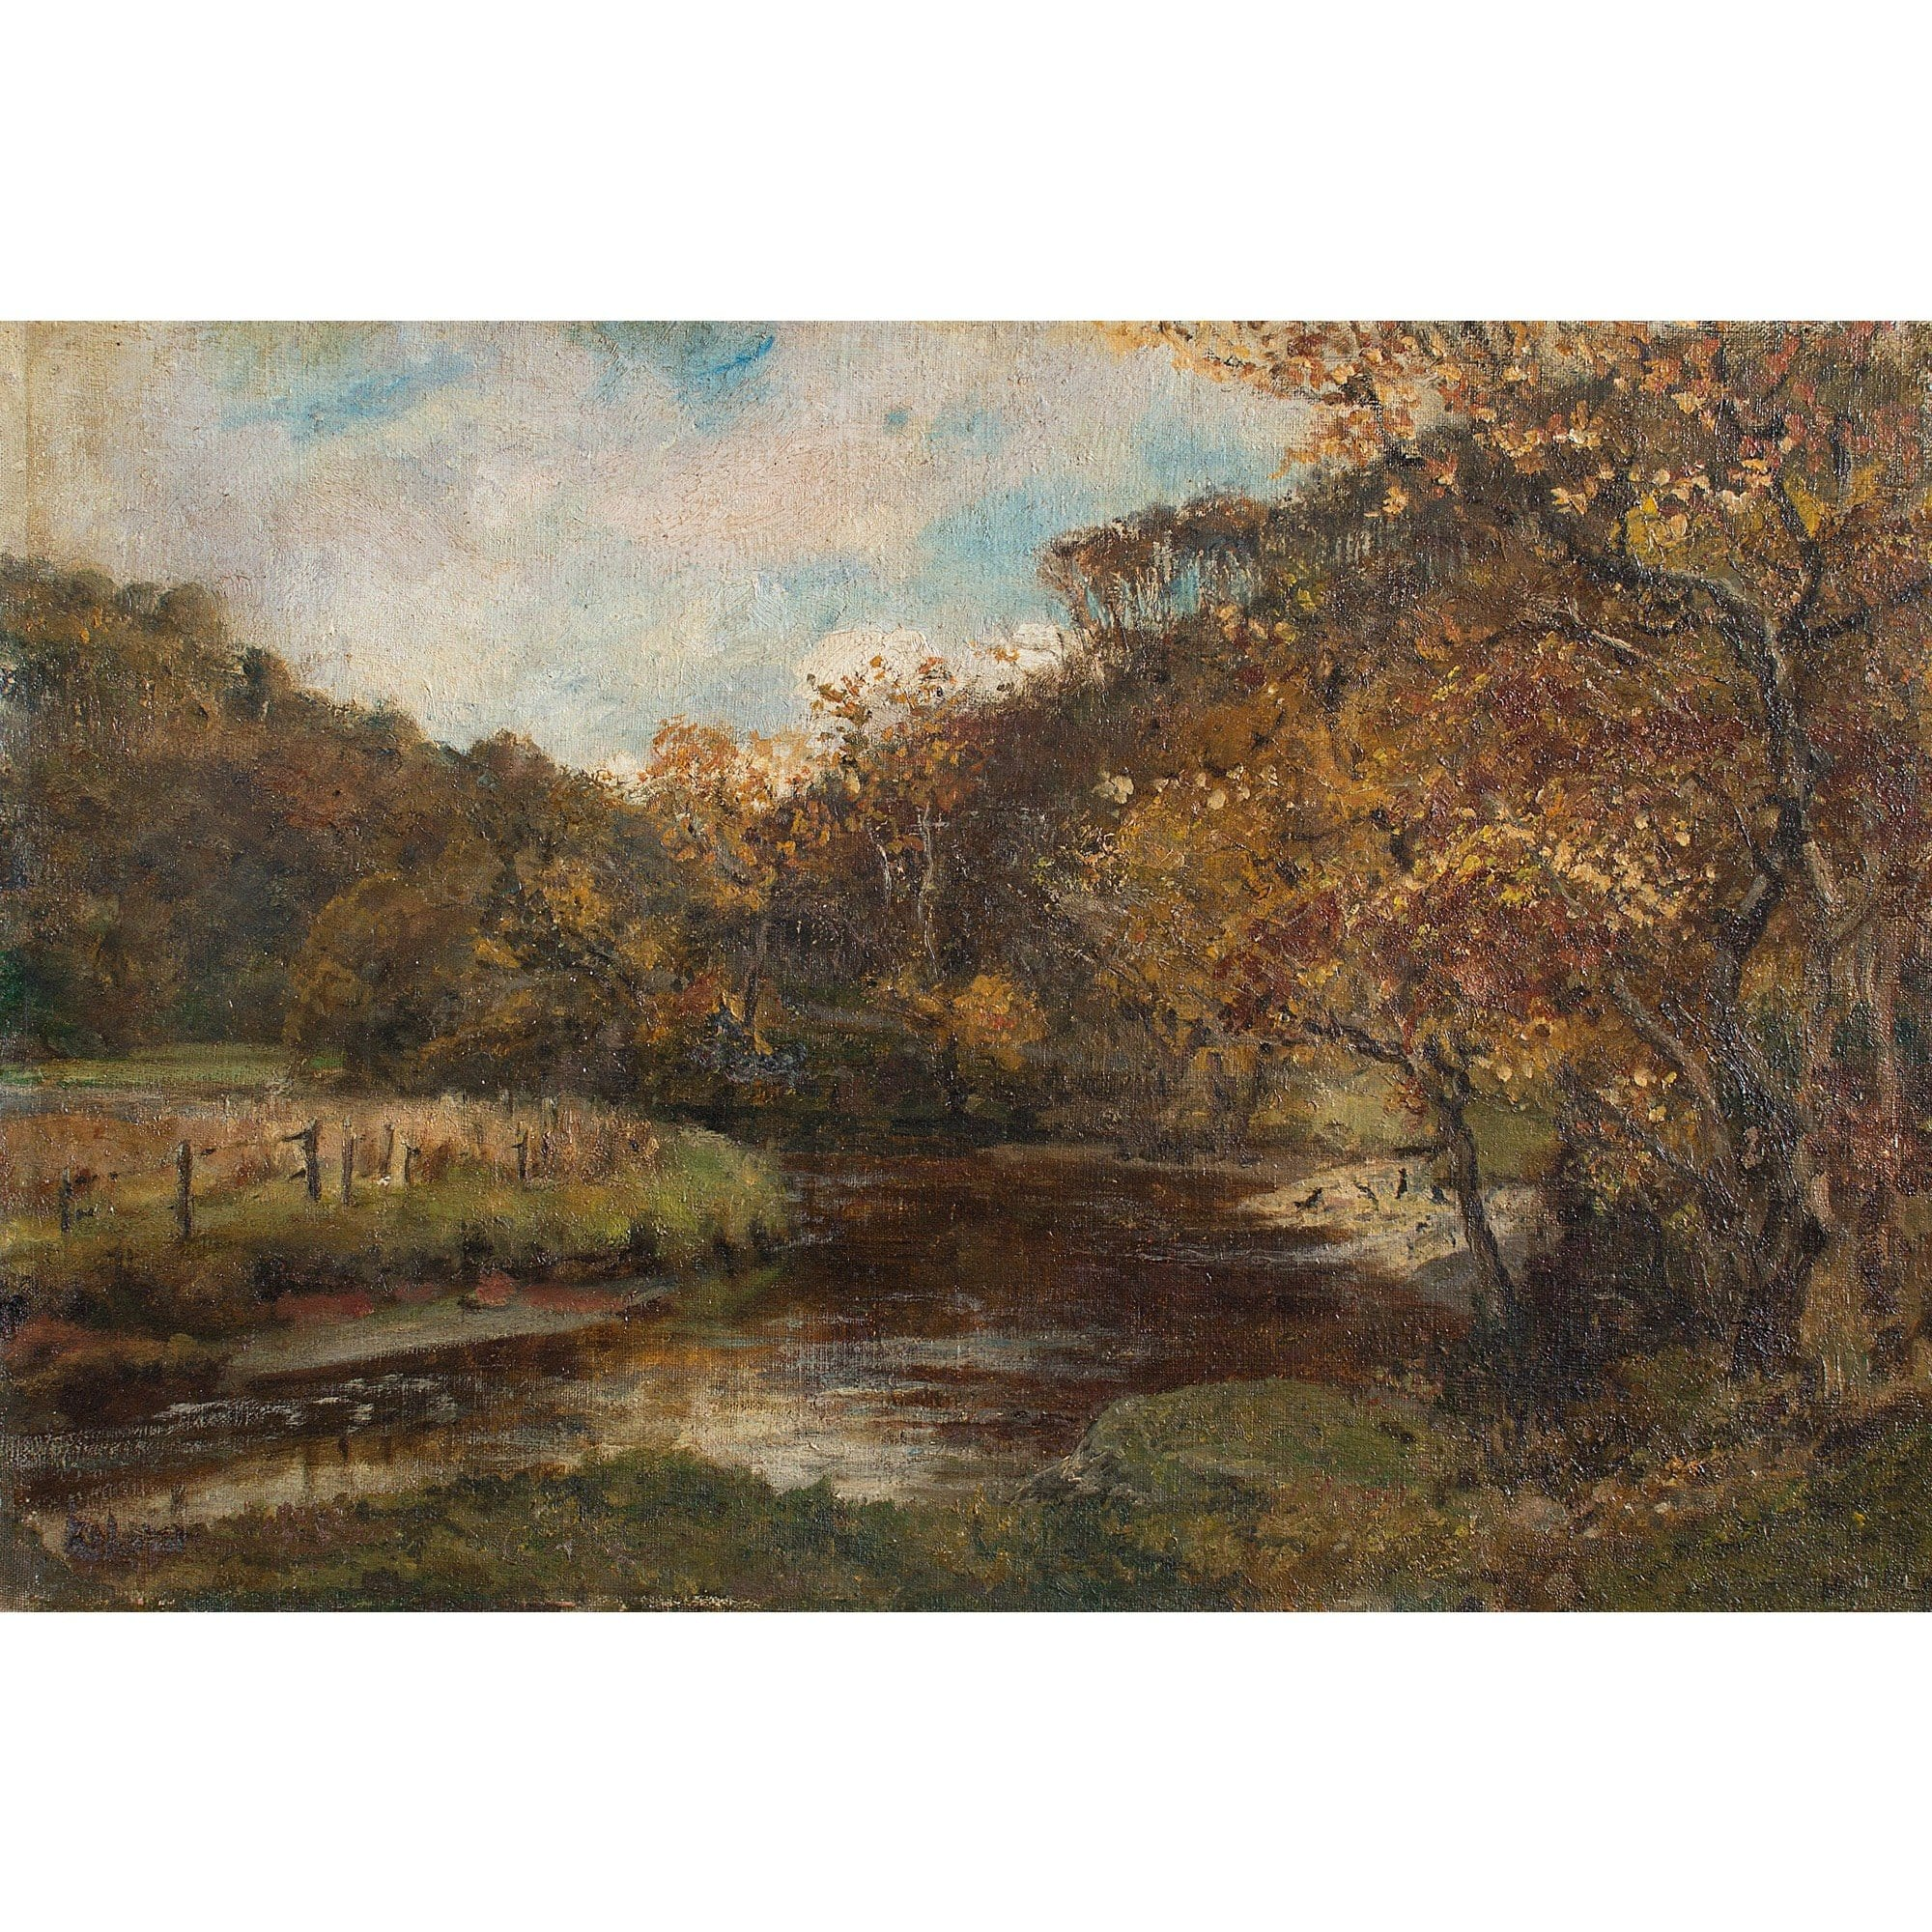 English School Landscape With River - Original Framed Painting - Antique Art - Brave Fine Art